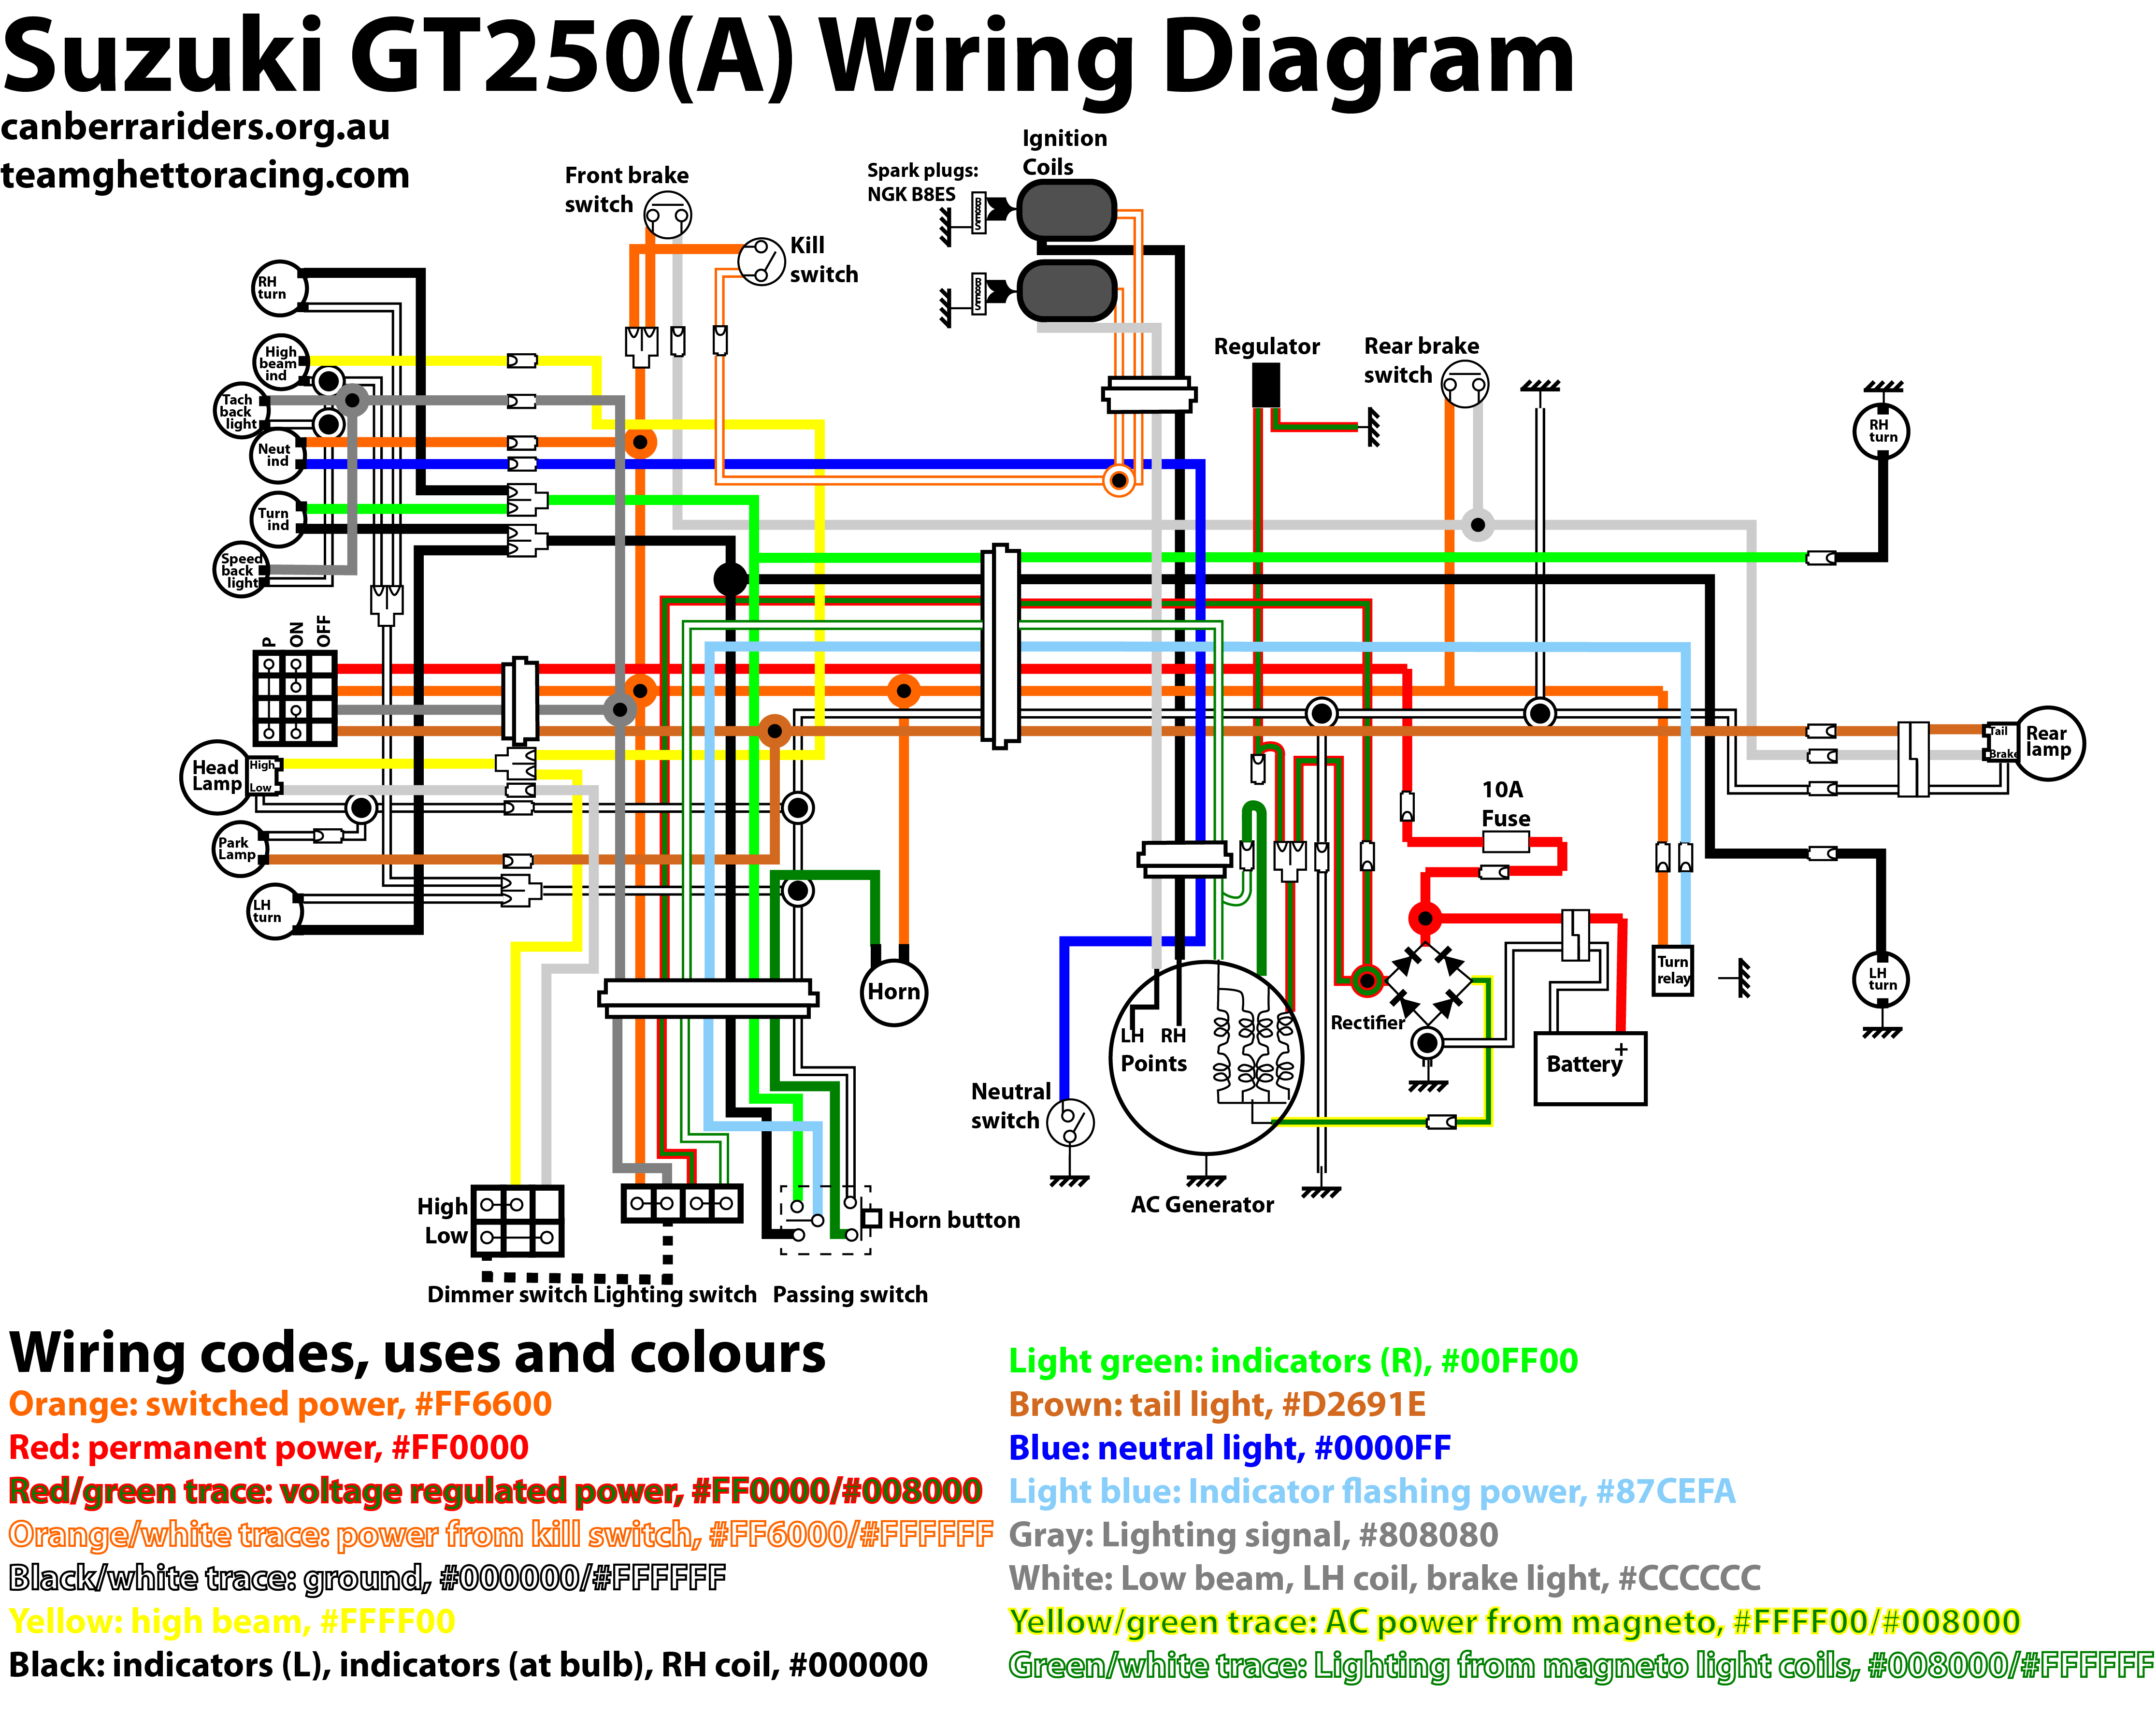 Suzuki_GT250A_Wiring_Diagram suzuki gt 250 wiring diagram suzuki wiring diagrams instruction 1987 suzuki 250 quadrunner wiring diagram at readyjetset.co